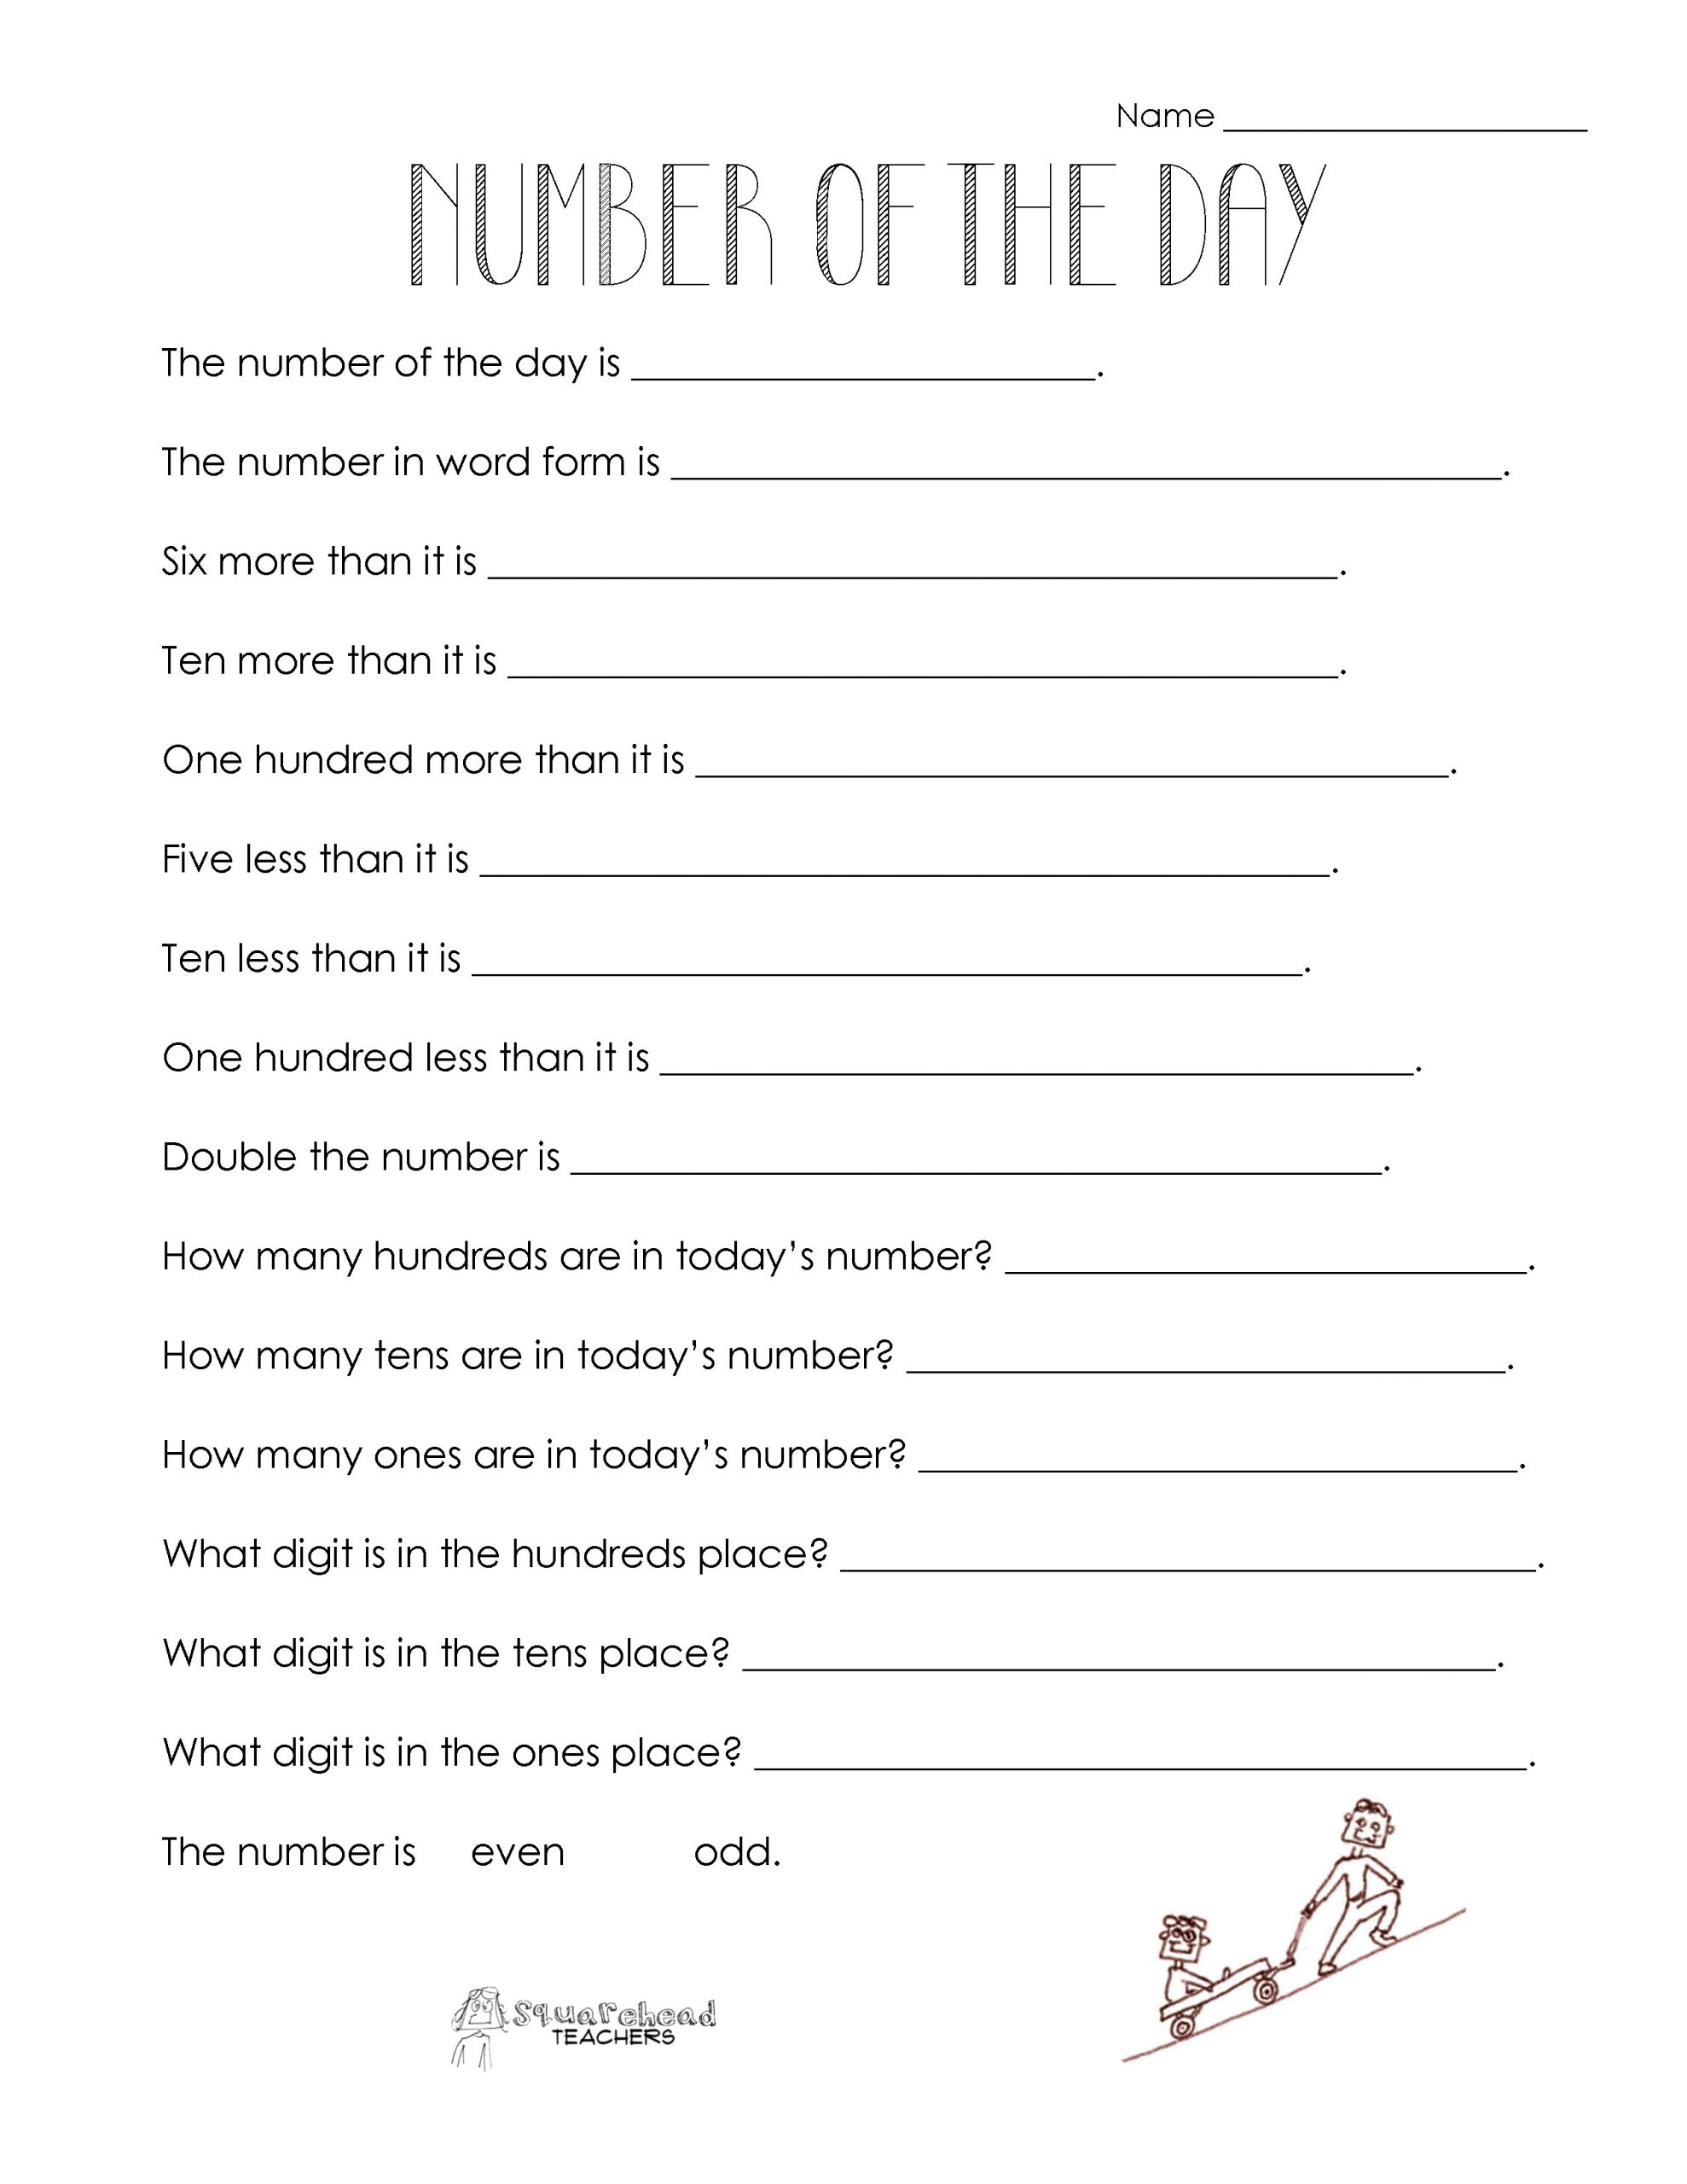 Sequencing Worksheet 2nd Grade Number Of the Day Worksheet Collection